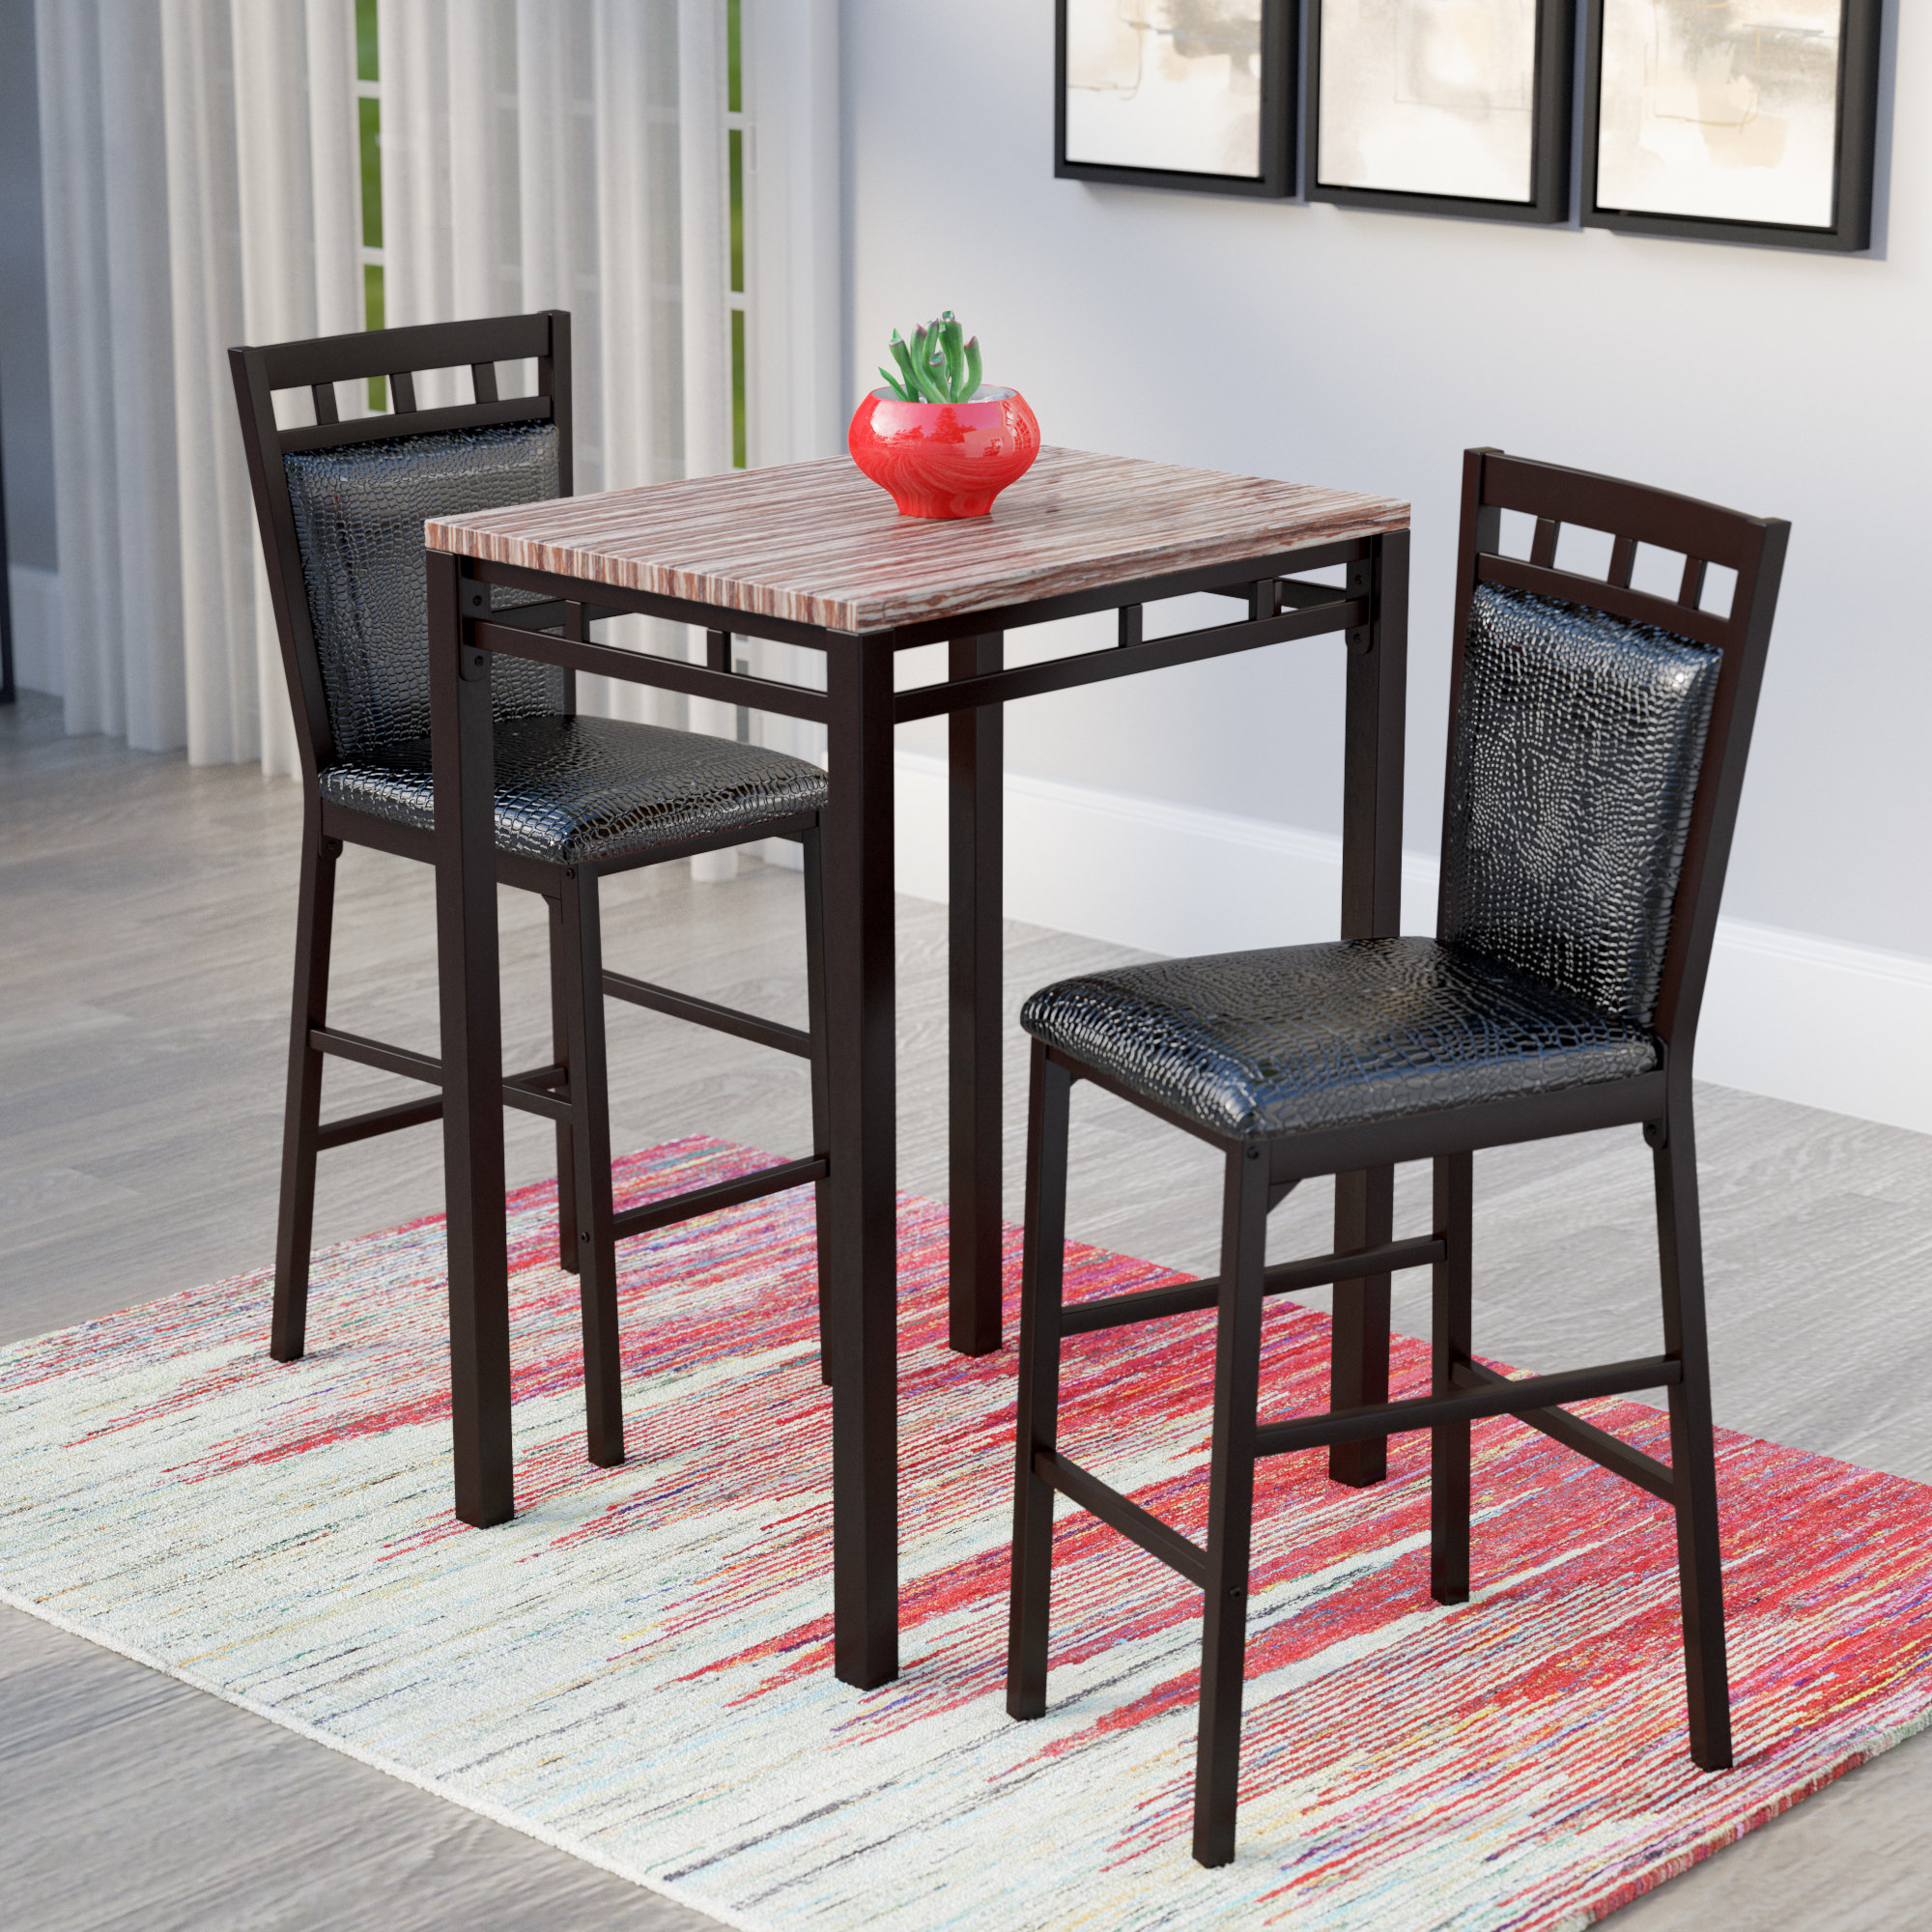 Wayfair With Regard To Most Recent Miskell 3 Piece Dining Sets (#18 of 20)